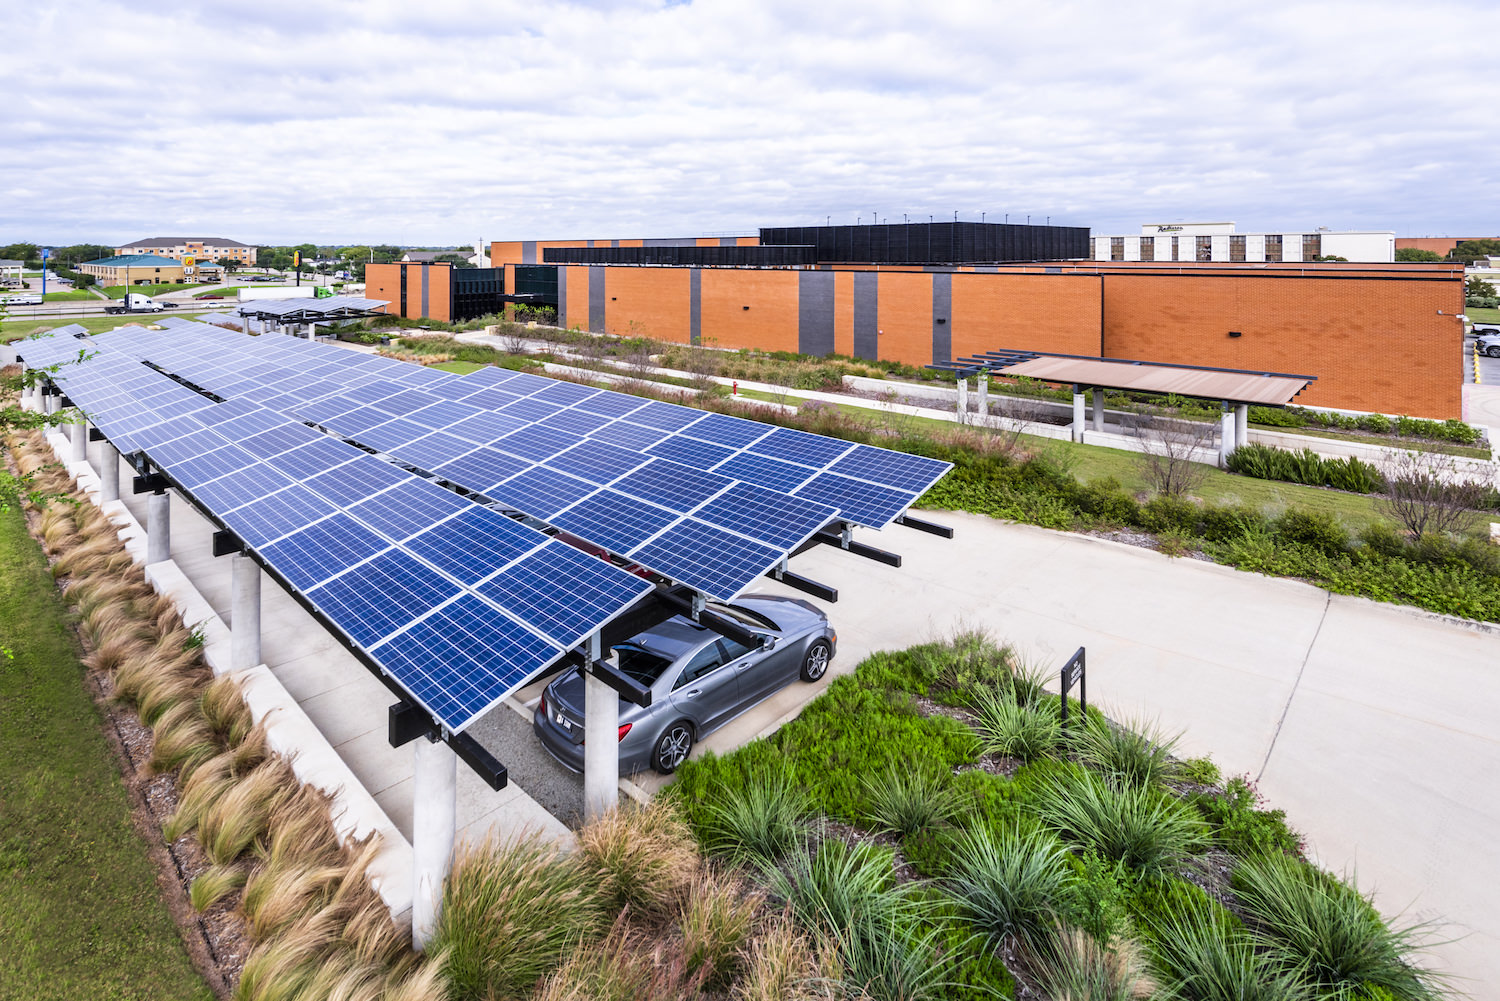 Architecture Exterior, Commercial Exterior, Solar Panels, Data Center, Elevated View